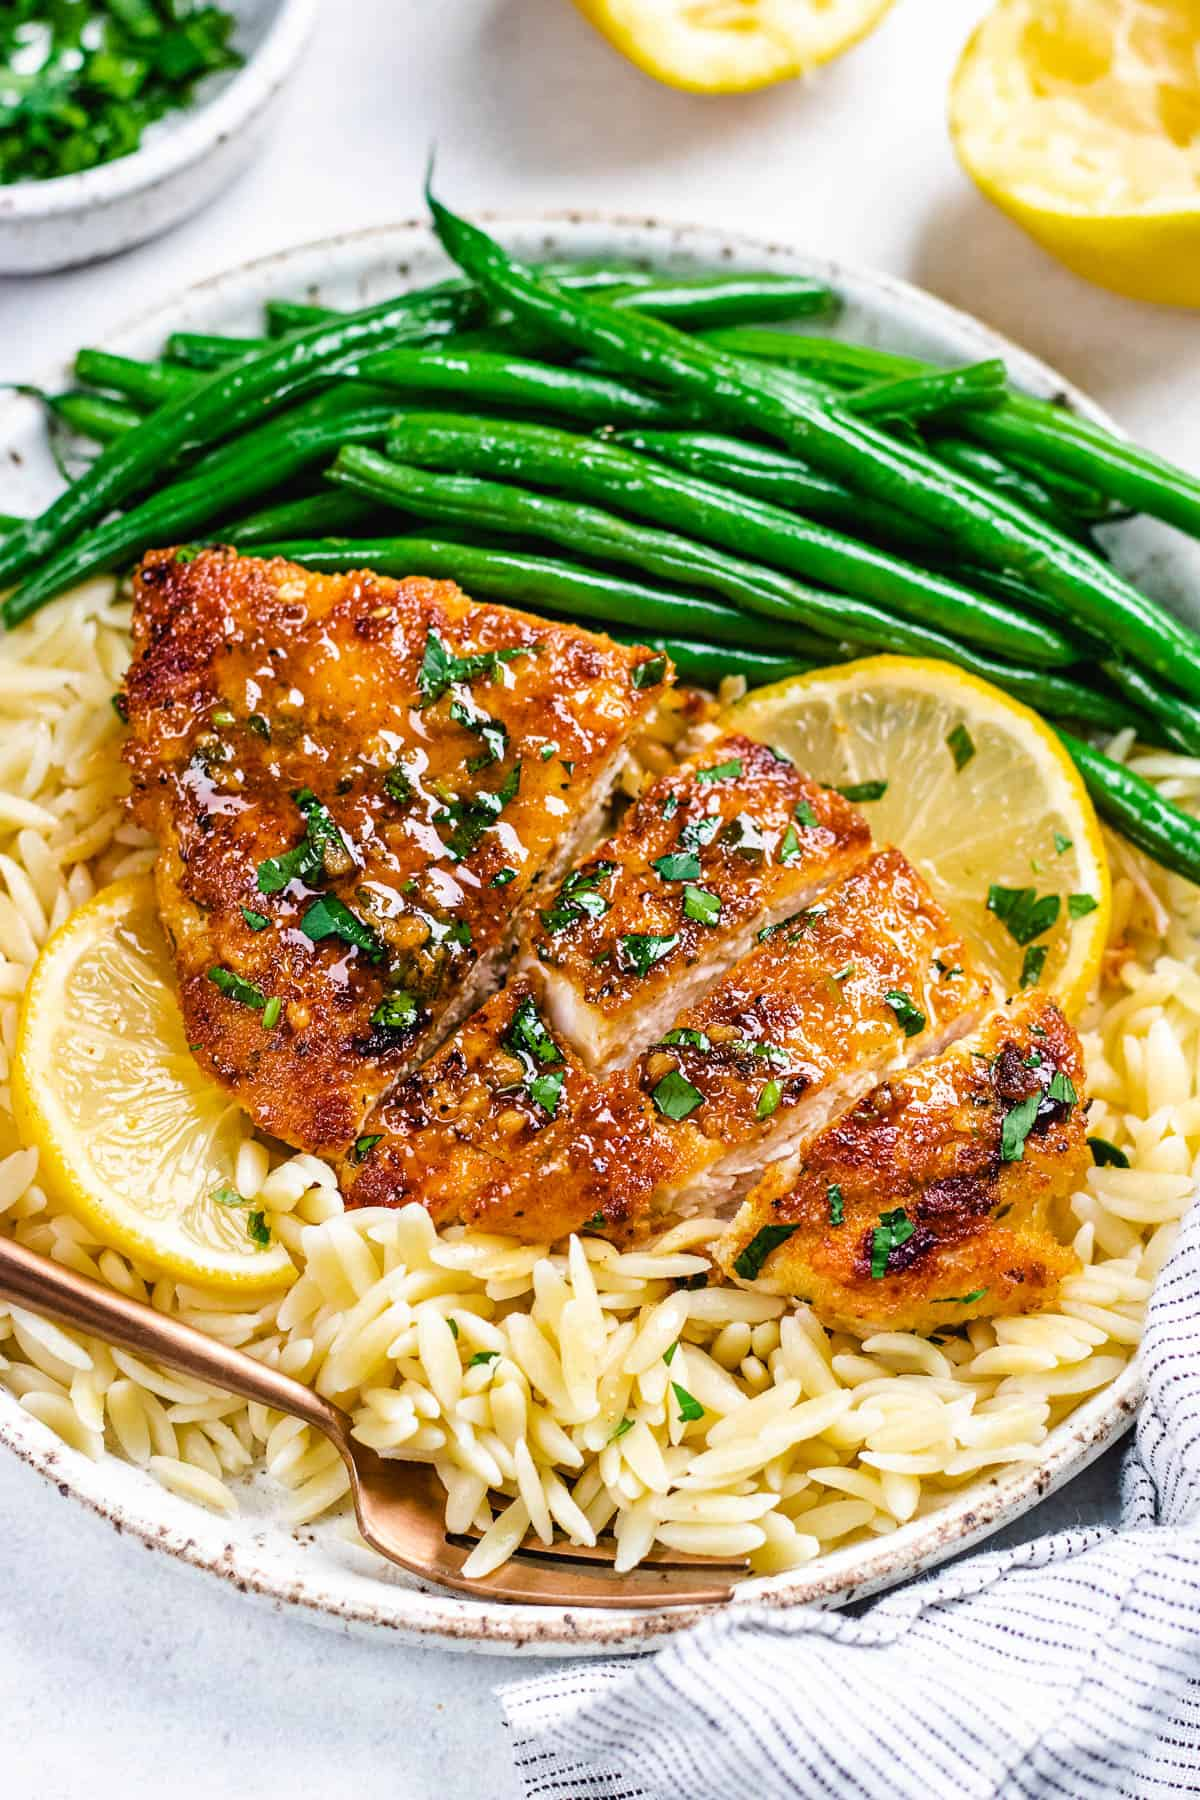 Chicken breast with orzo and green beans on a white plate.